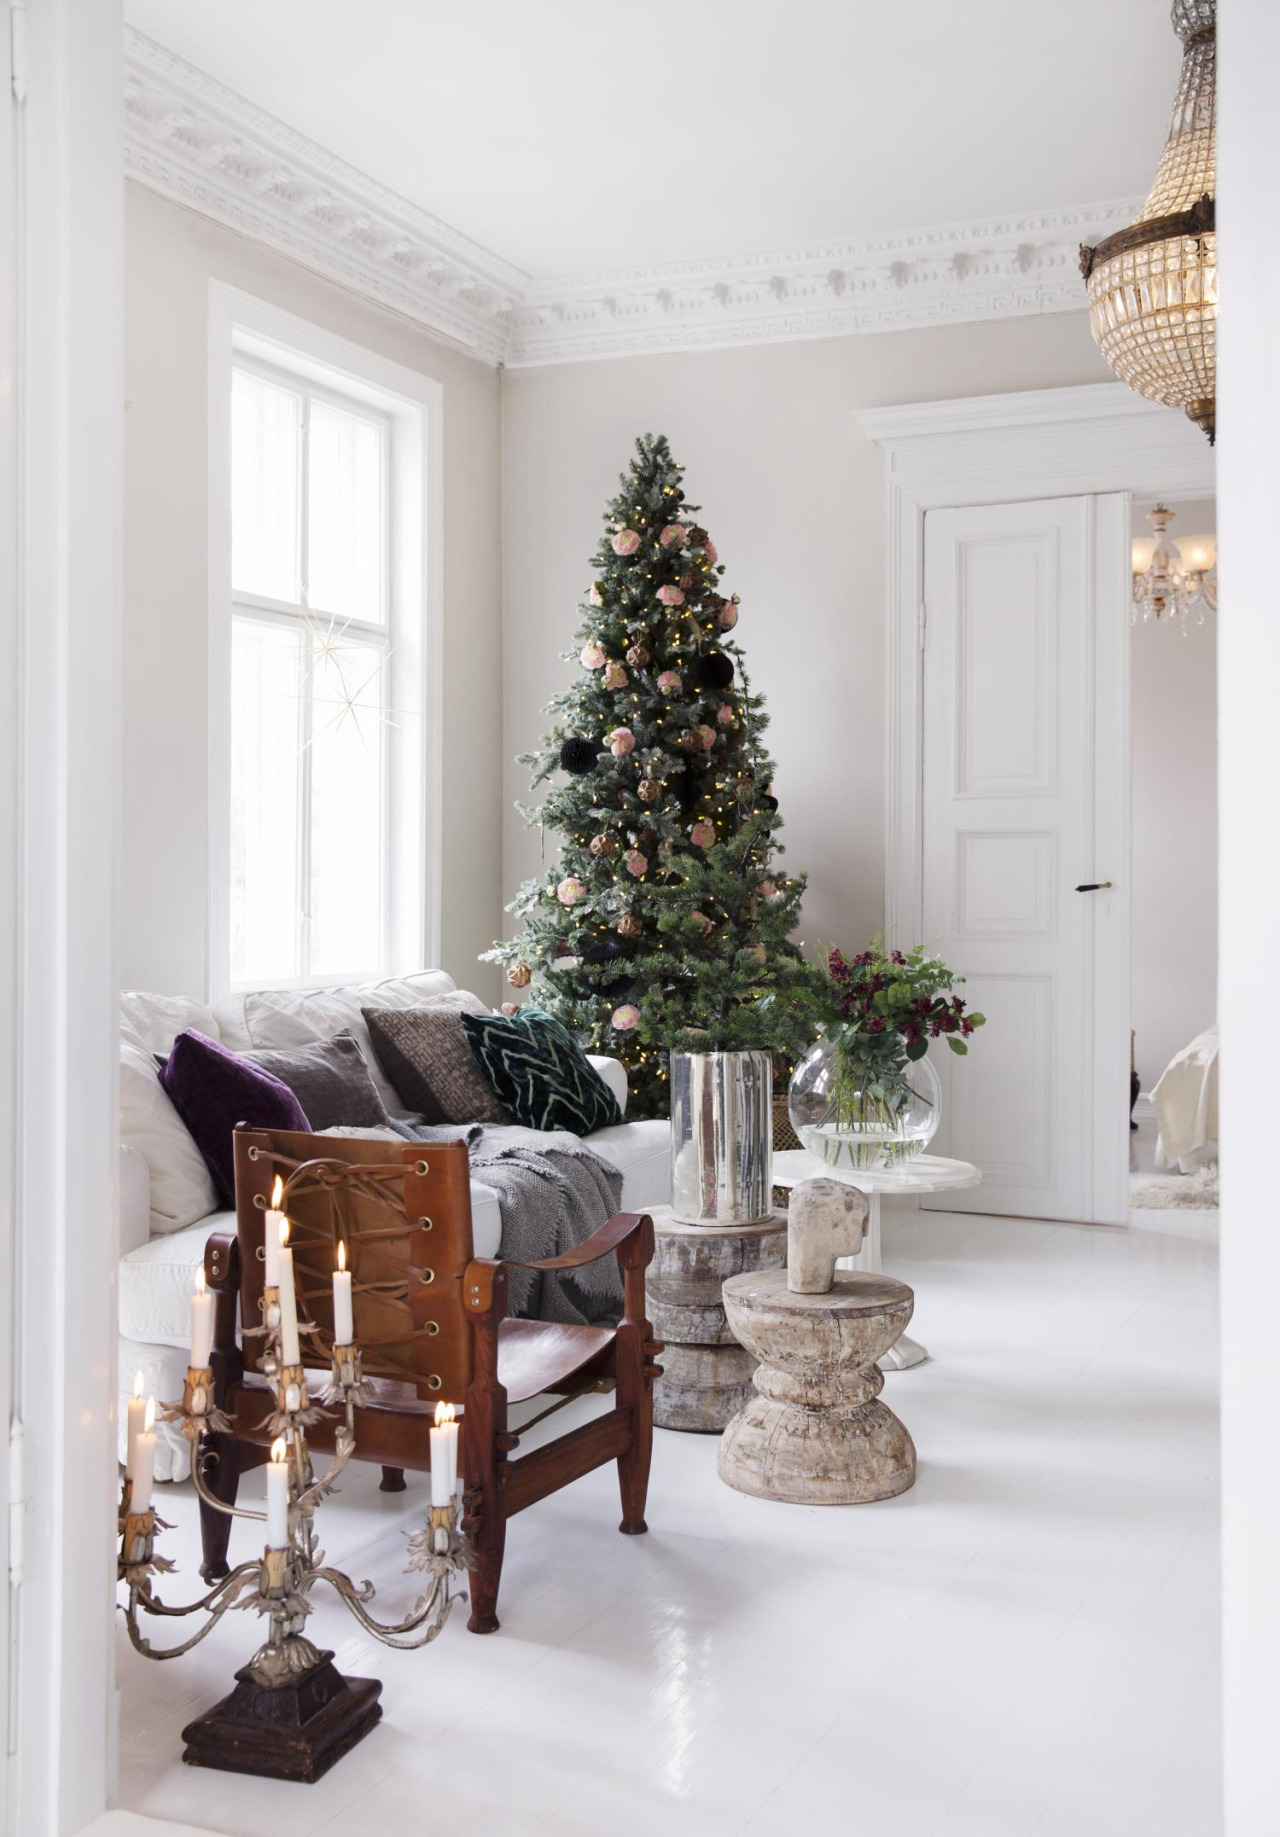 a-dreamy-christmas-home2